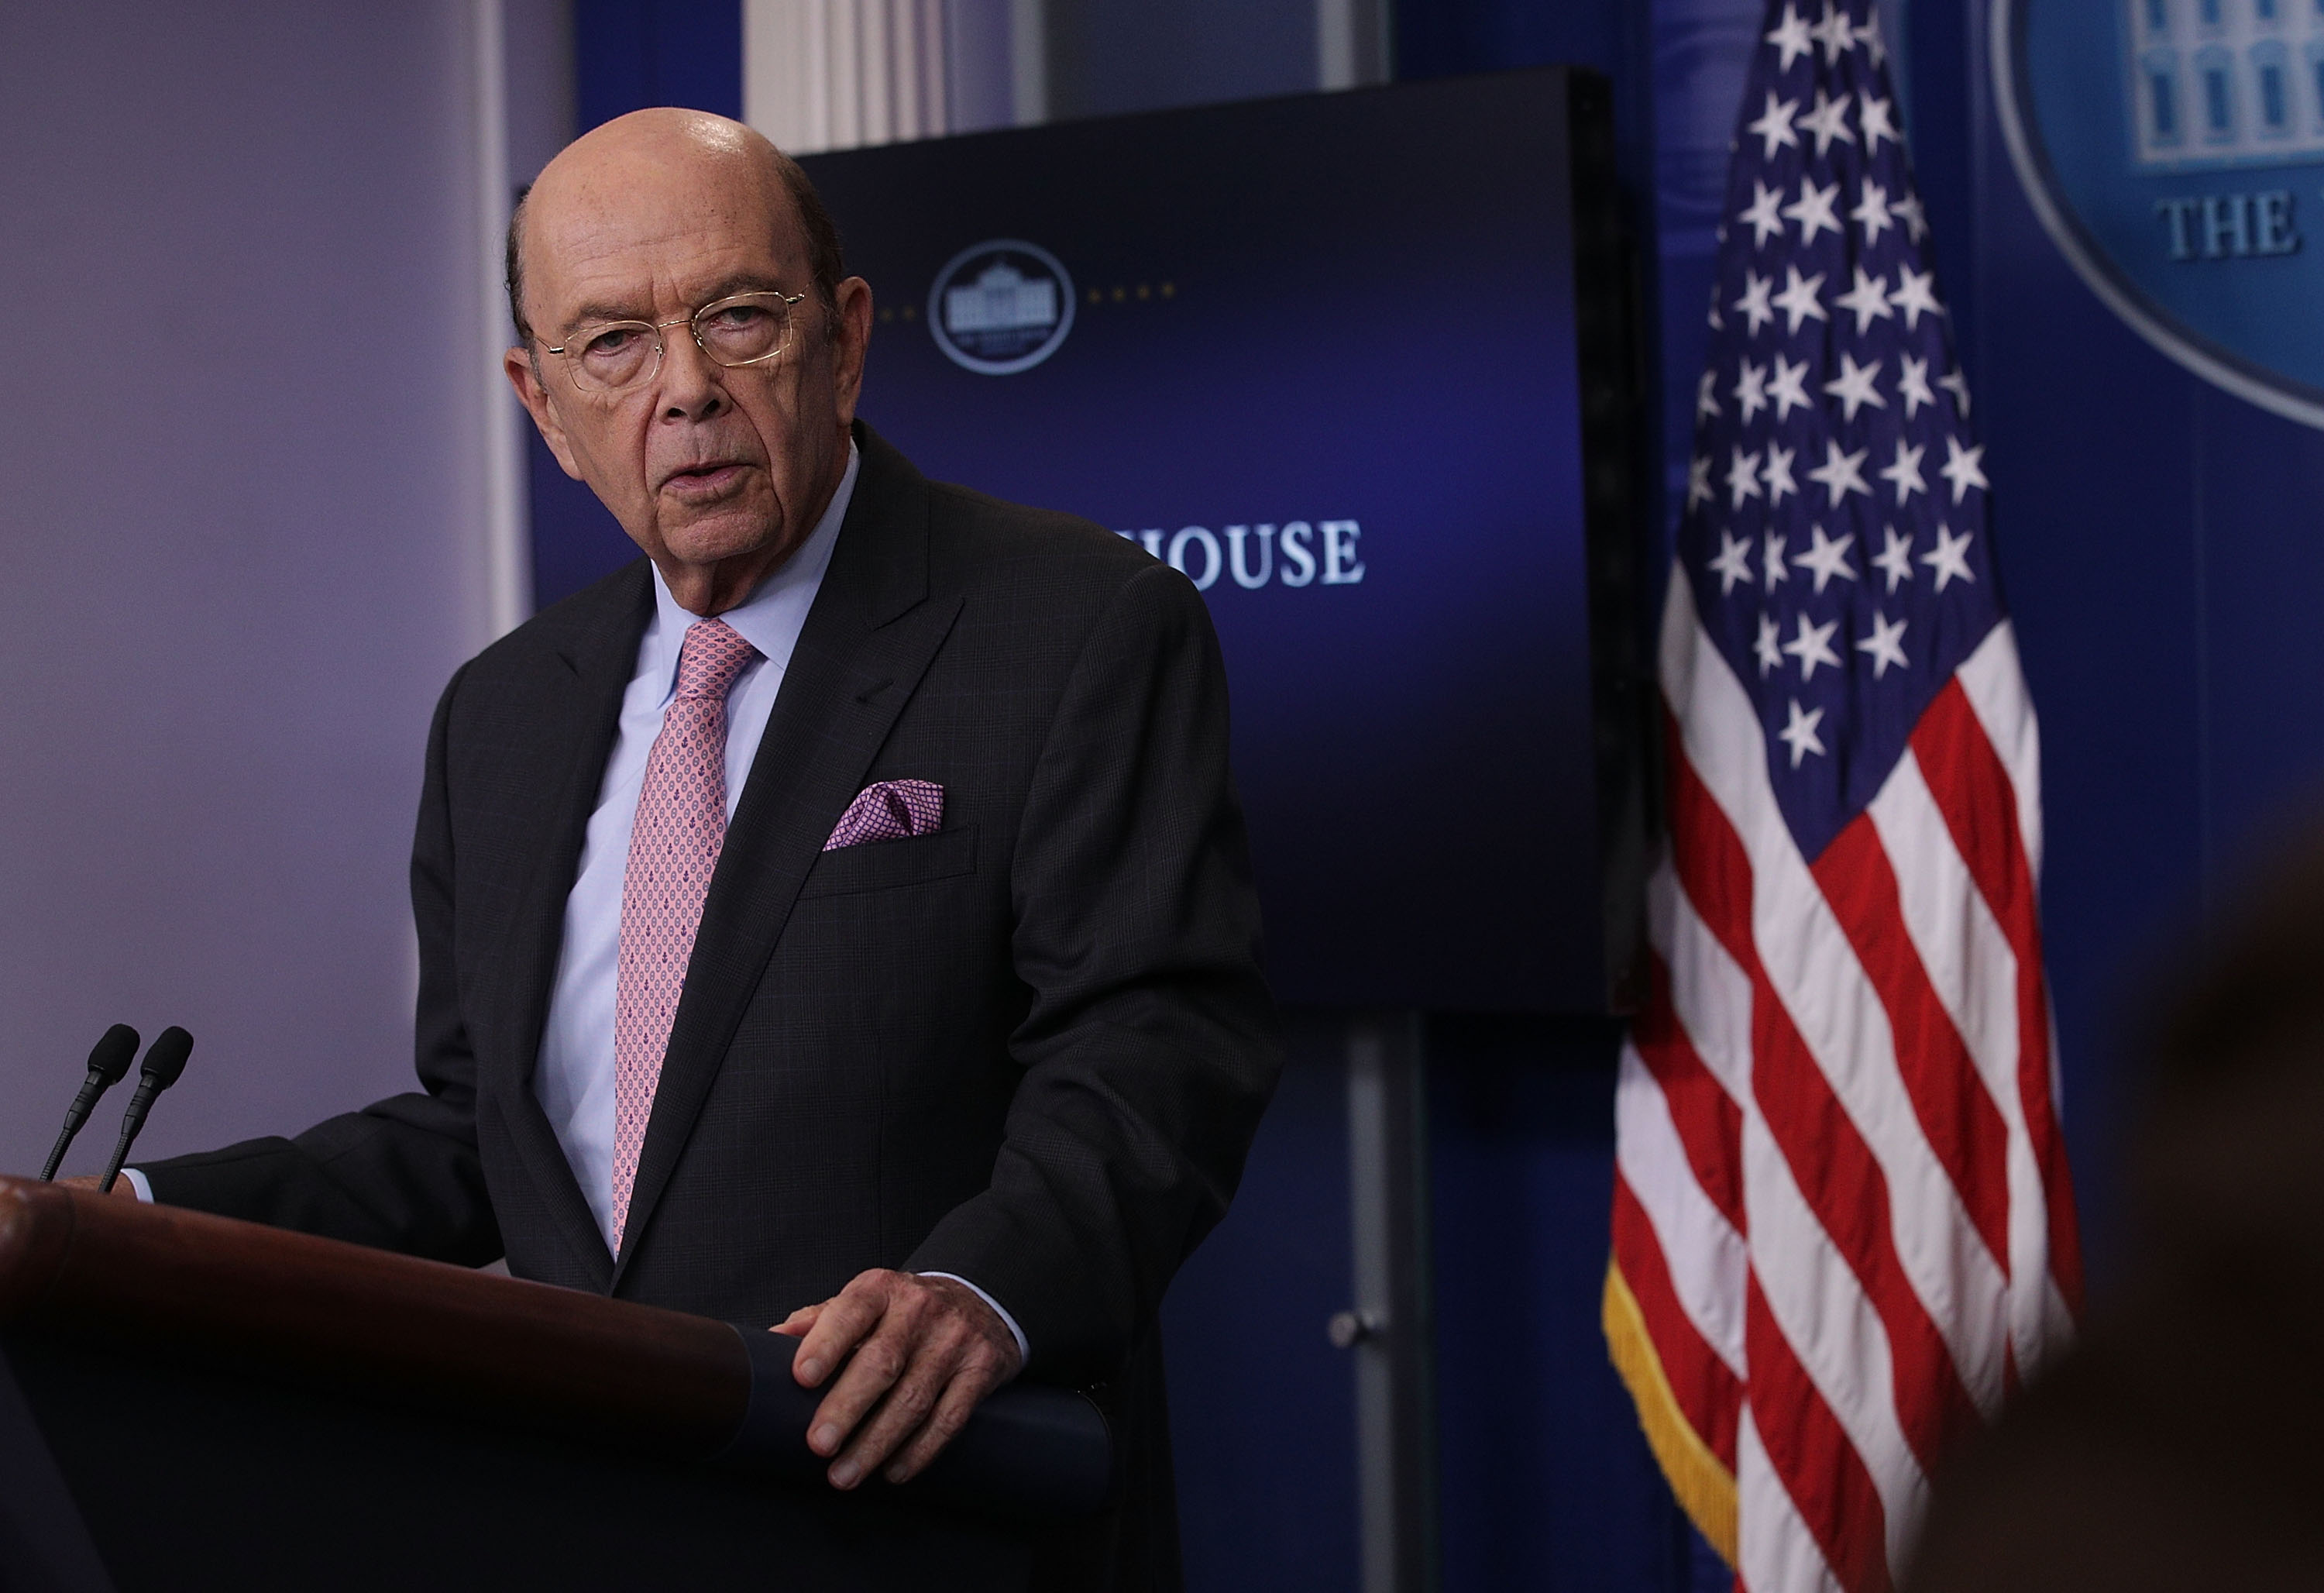 Secretary of Commerce Wilbur Ross discusses the new U.S. tariff on Canadian softwood lumber during the White House daily briefing on April 25, 2017 (Alex Wong/Getty Images)